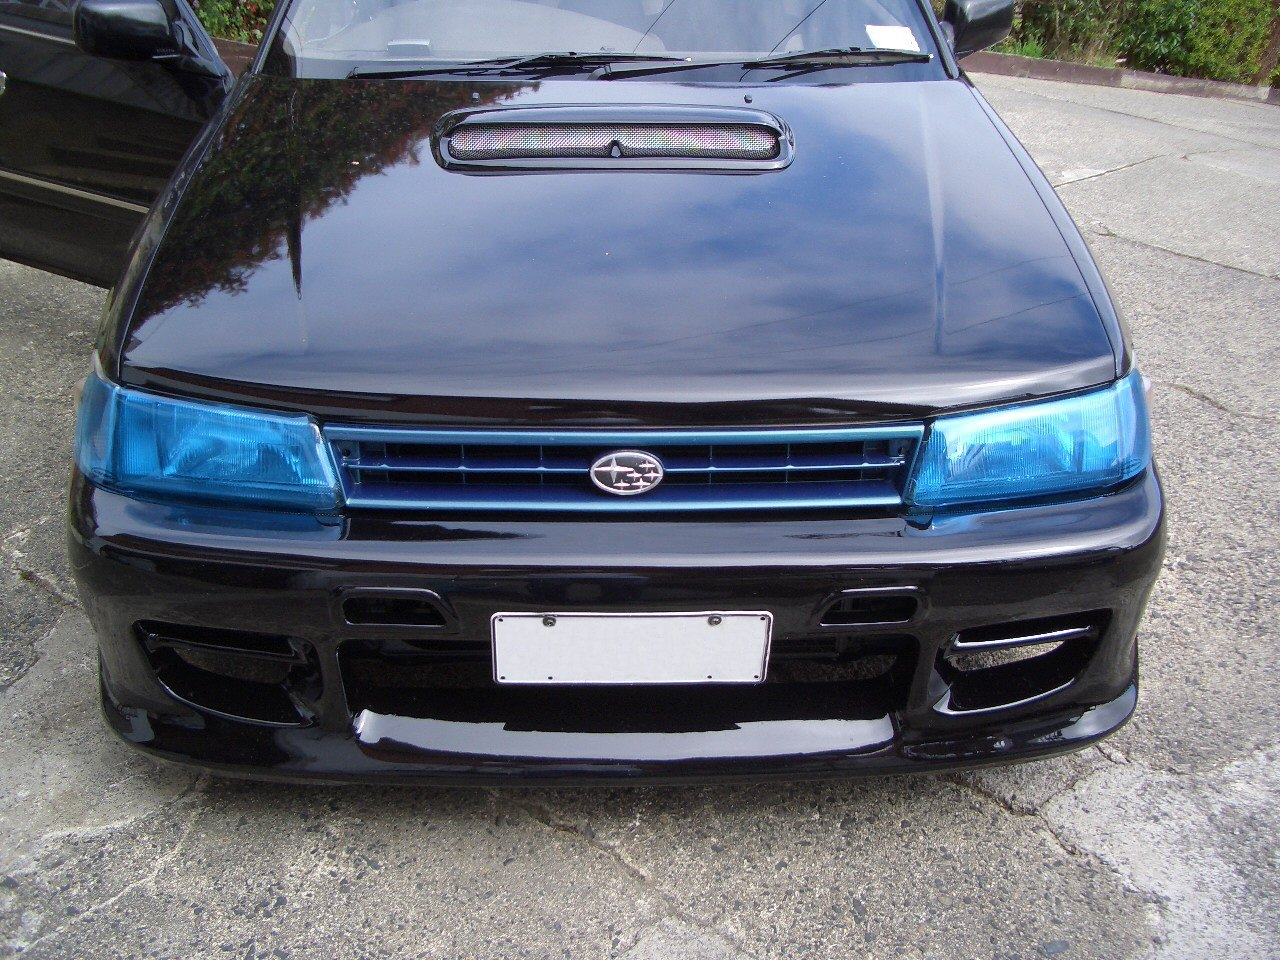 Sperla123 1990 Subaru Legacy Specs Photos Modification Info At Color Wire Diagram 5528700062 Original